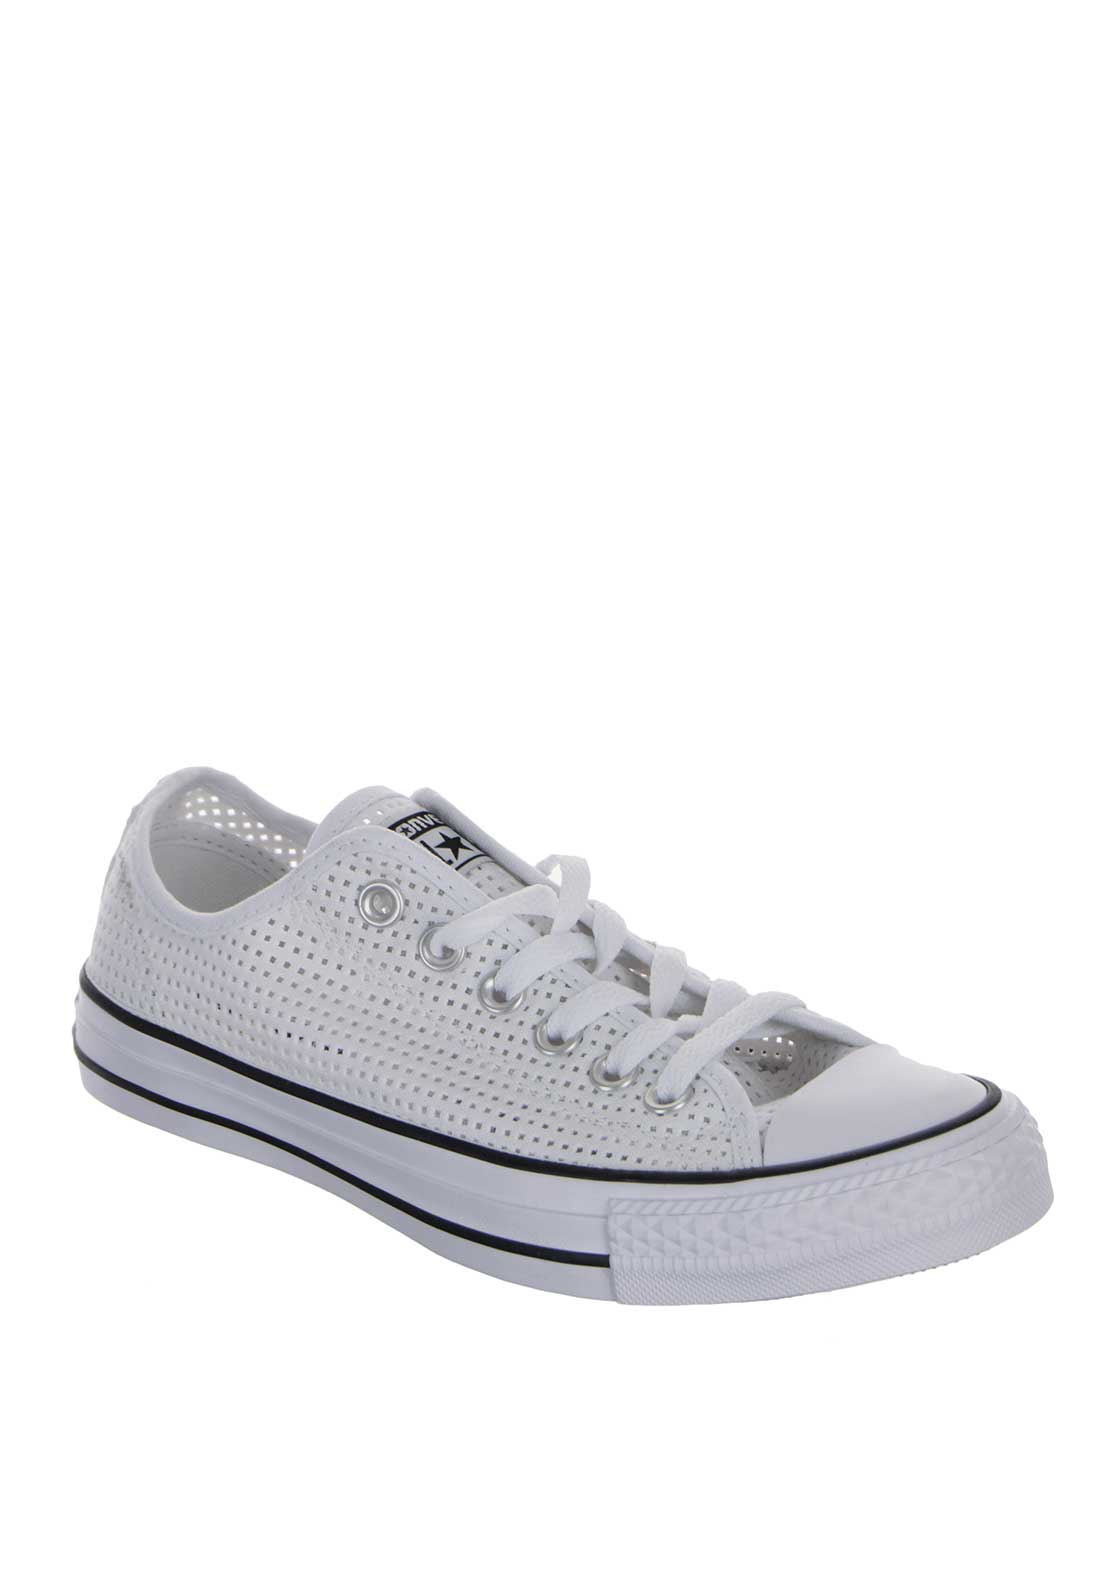 Converse Womens All Star Leather Trainers, White